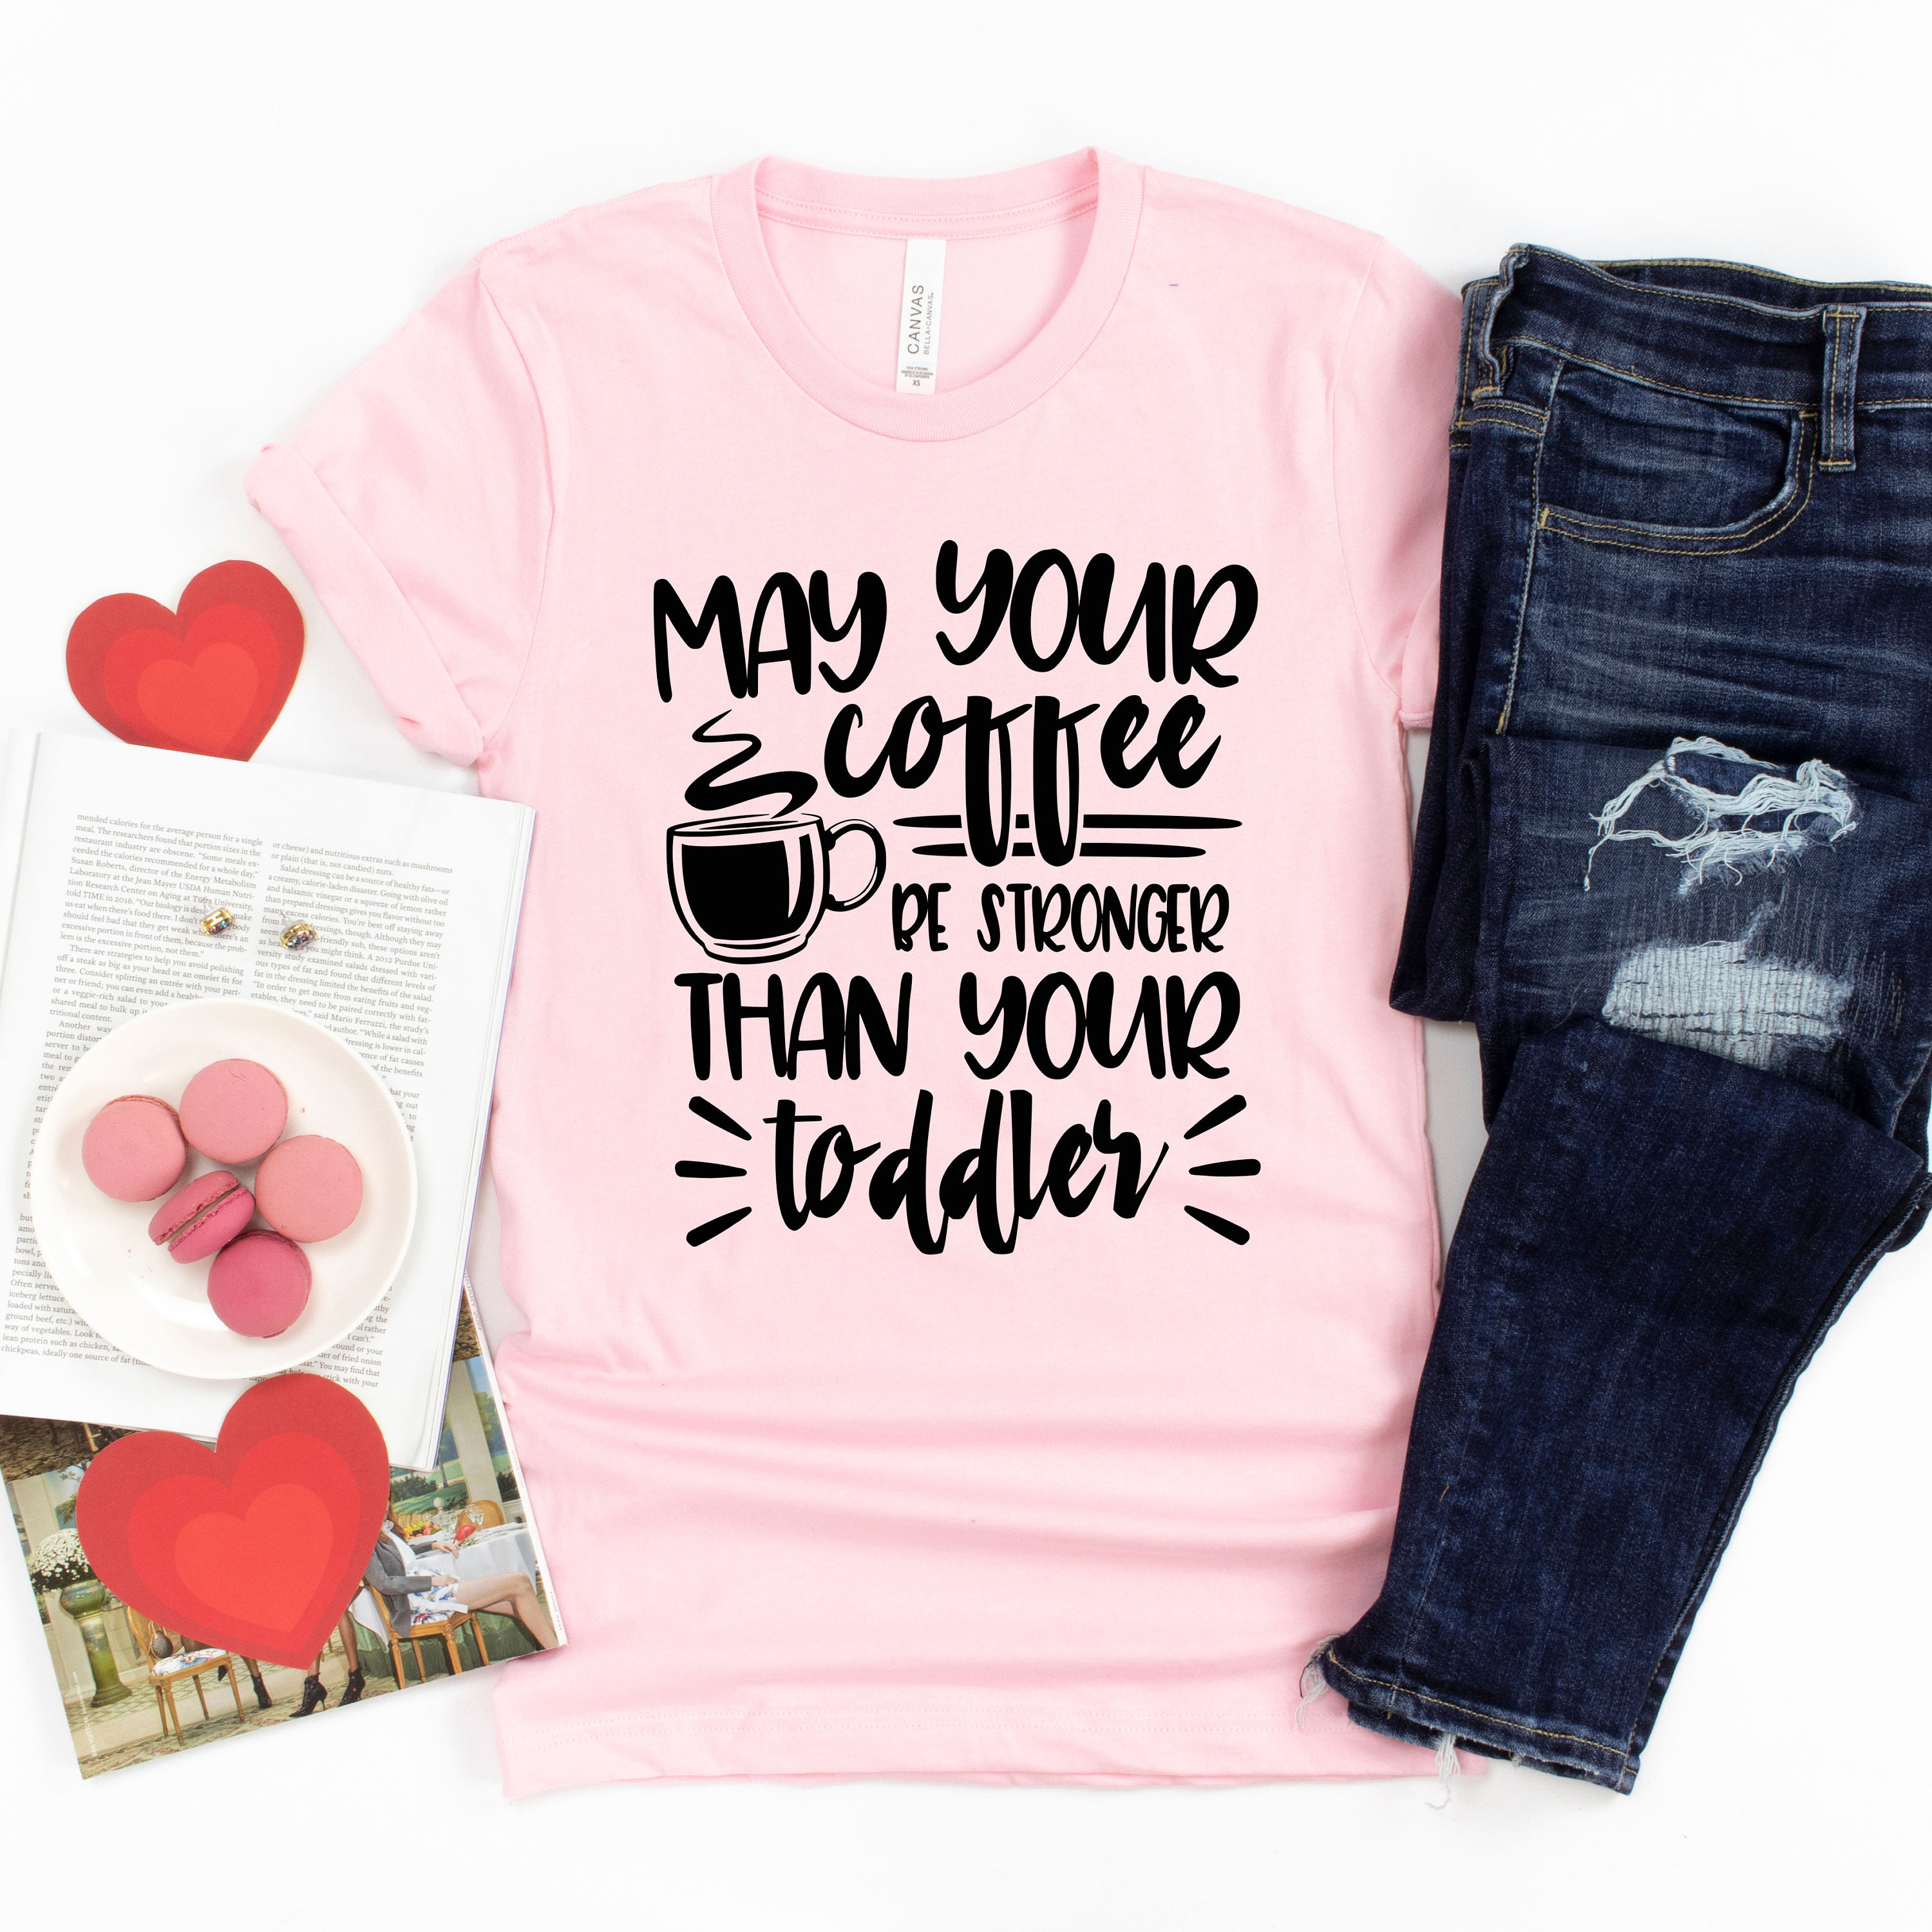 Toddler Mom TShirt Gifts for Mom Funny Tees for Her Coffee Motherhood Shirt T-Shirts for Moms